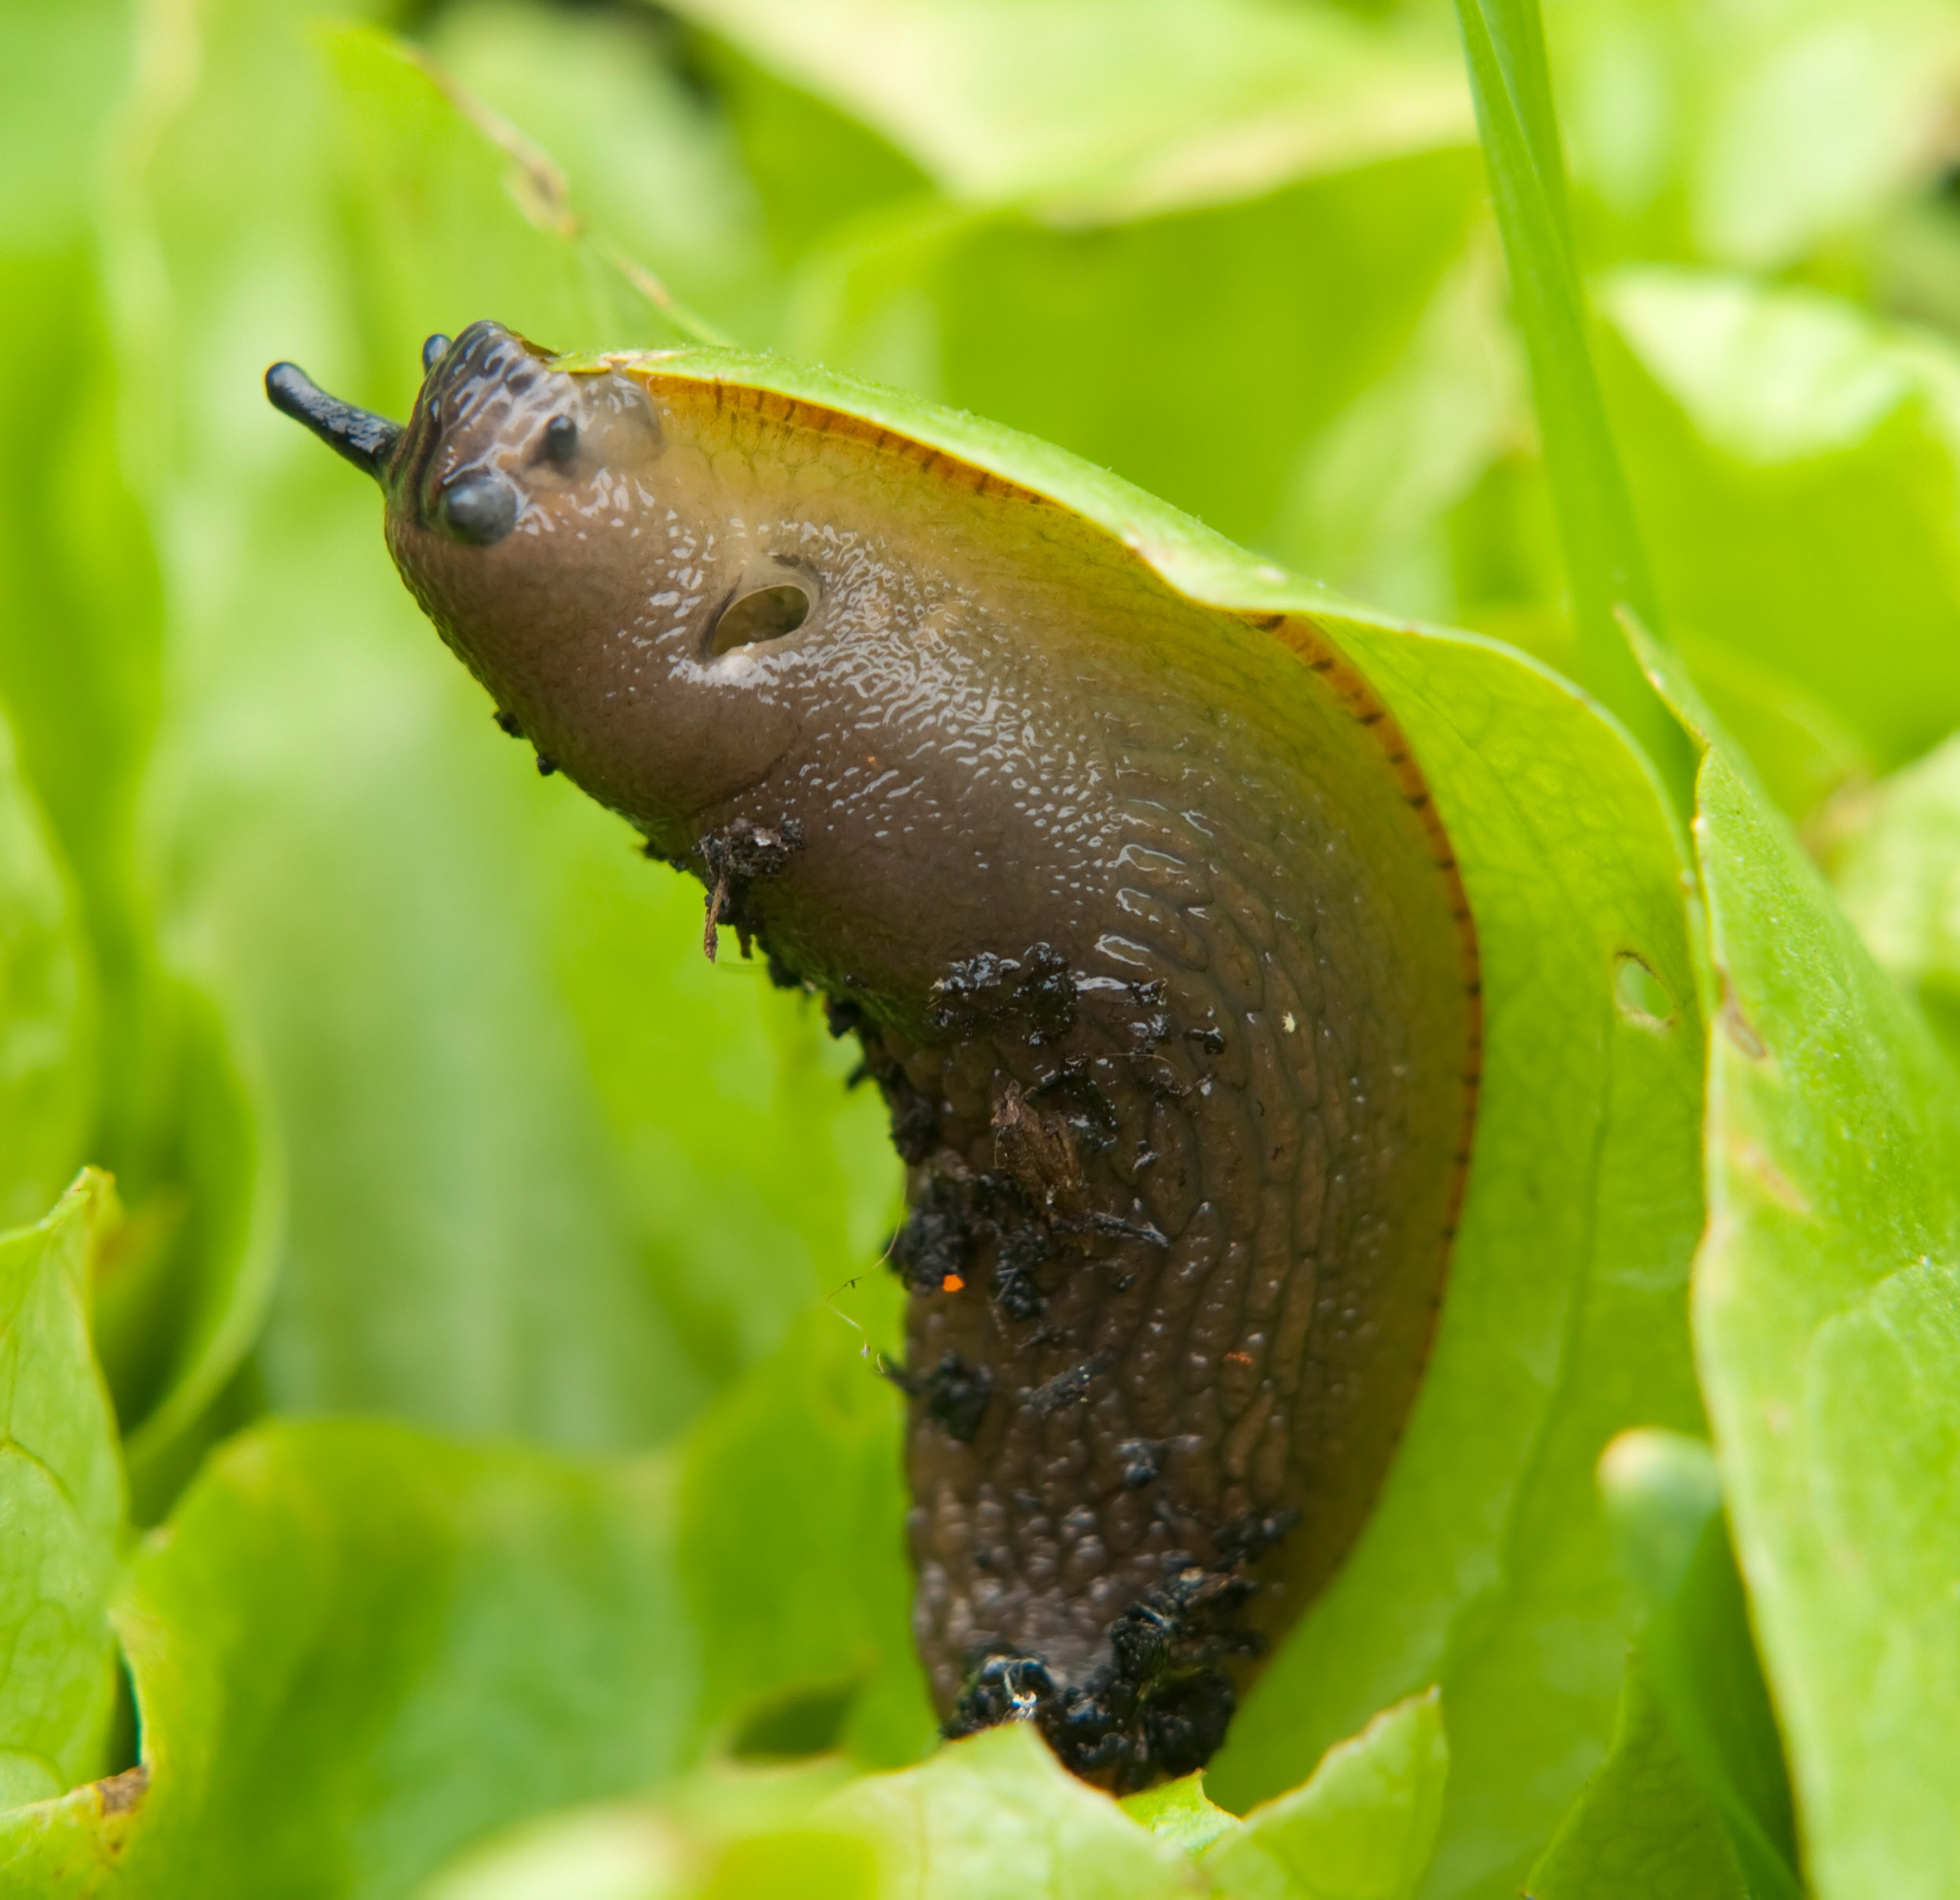 Hot, dry weather will drive slugs underground (Thinkstock/PA)